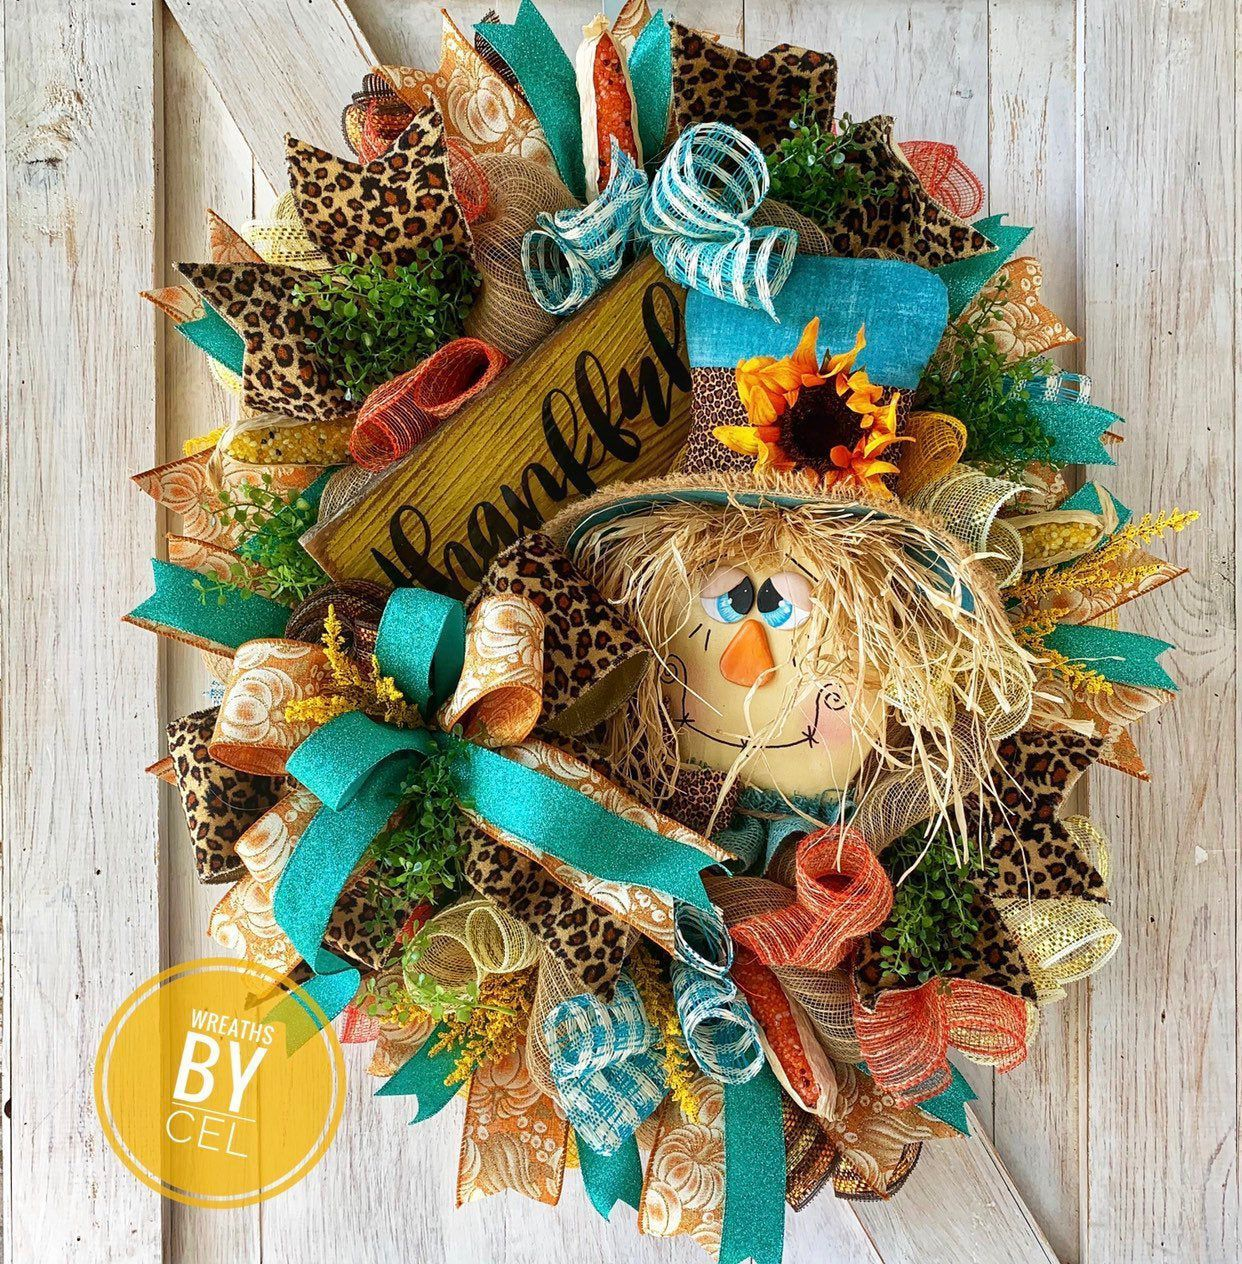 Fall Wreaths For Front Door, Fall Decoration, Scarecrow Wreath, Thankful Wreath, Thanksgiving Wreath #scarecrowwreath Excited to share this item from my #etsy shop: Fall Wreaths For Front Door, Fall Decoration, Scarecrow Wreath, Thankful Wreath, Thanksgiving Wreath #scarecrowwreath Fall Wreaths For Front Door, Fall Decoration, Scarecrow Wreath, Thankful Wreath, Thanksgiving Wreath #scarecrowwreath Excited to share this item from my #etsy shop: Fall Wreaths For Front Door, Fall Decoration, Scarec #scarecrowwreath